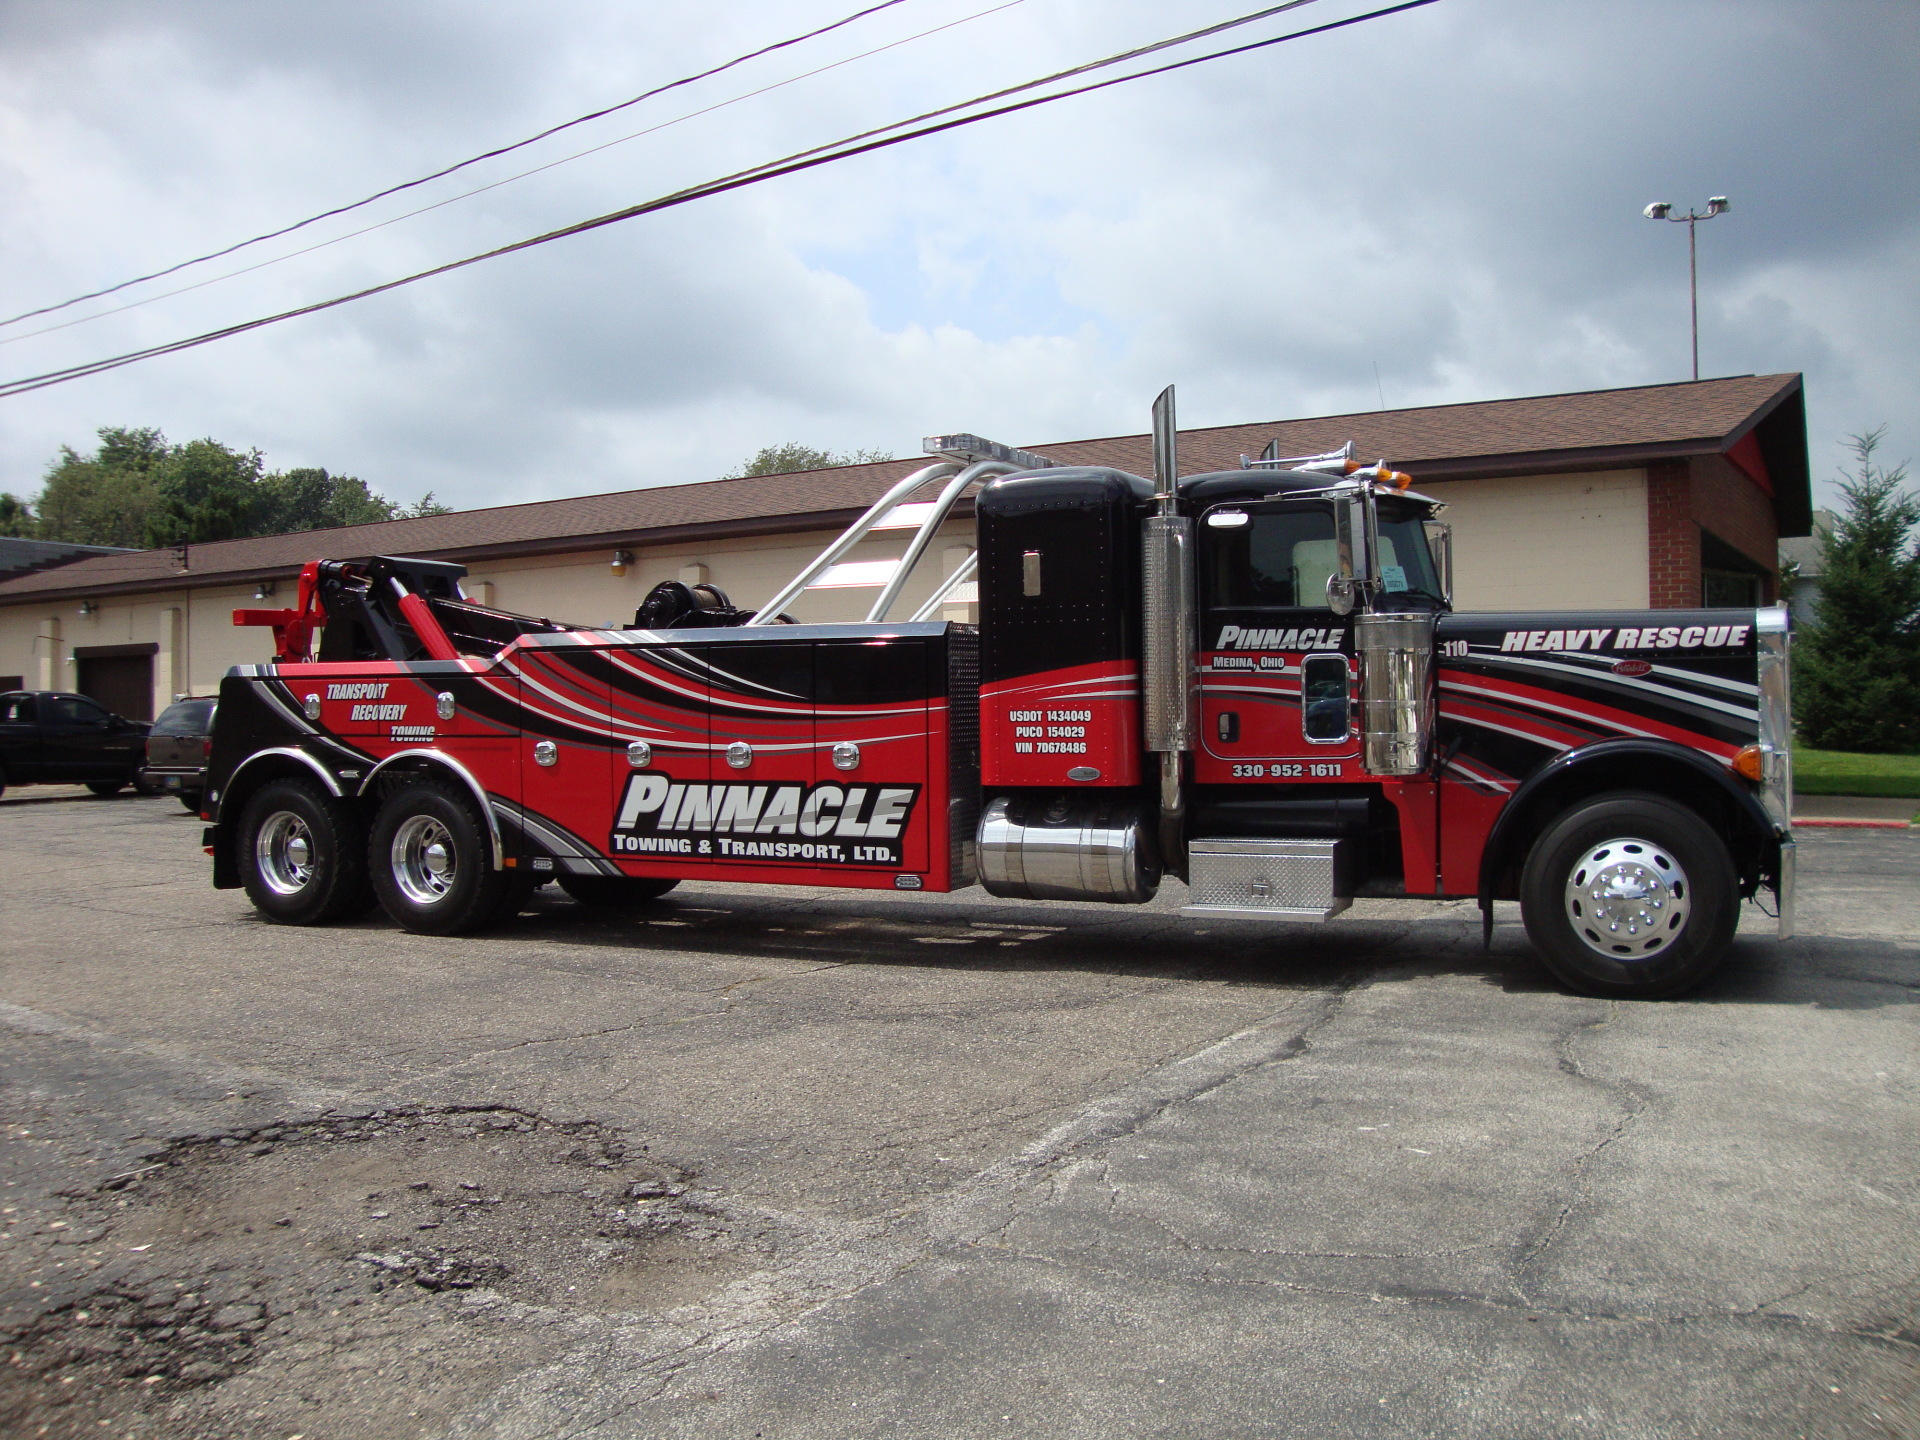 Pinnacle Towing